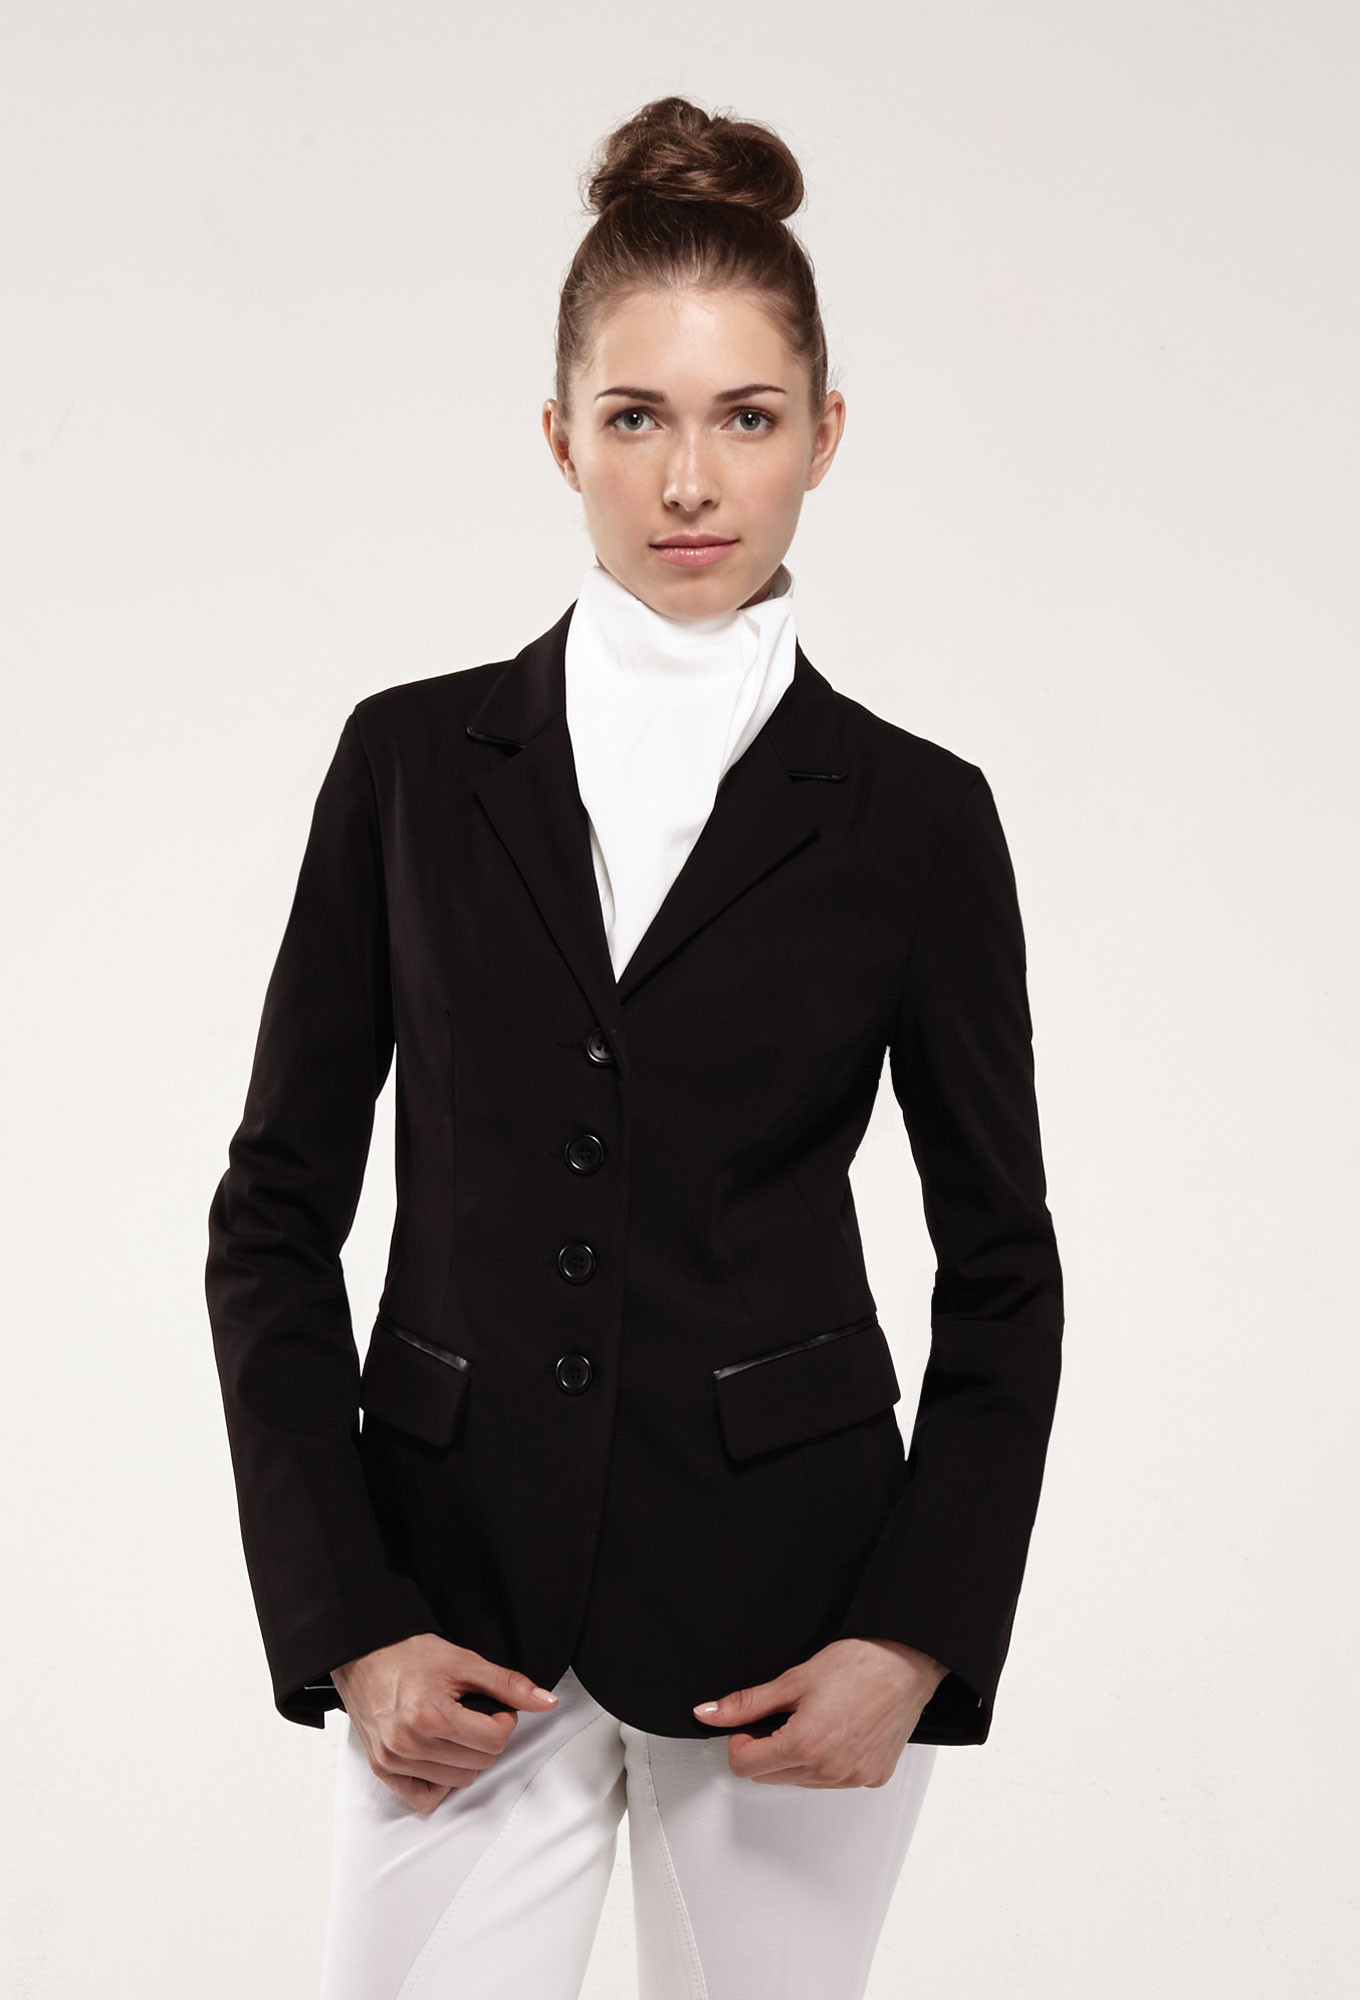 Founded in most known for her contemporary spa uniforms collection, Noel Asmar Uniforms is a premium uniform brand designing men's and women's tunics, suiting, athleisure & resort uniforms for some of the worlds most iconic brands.